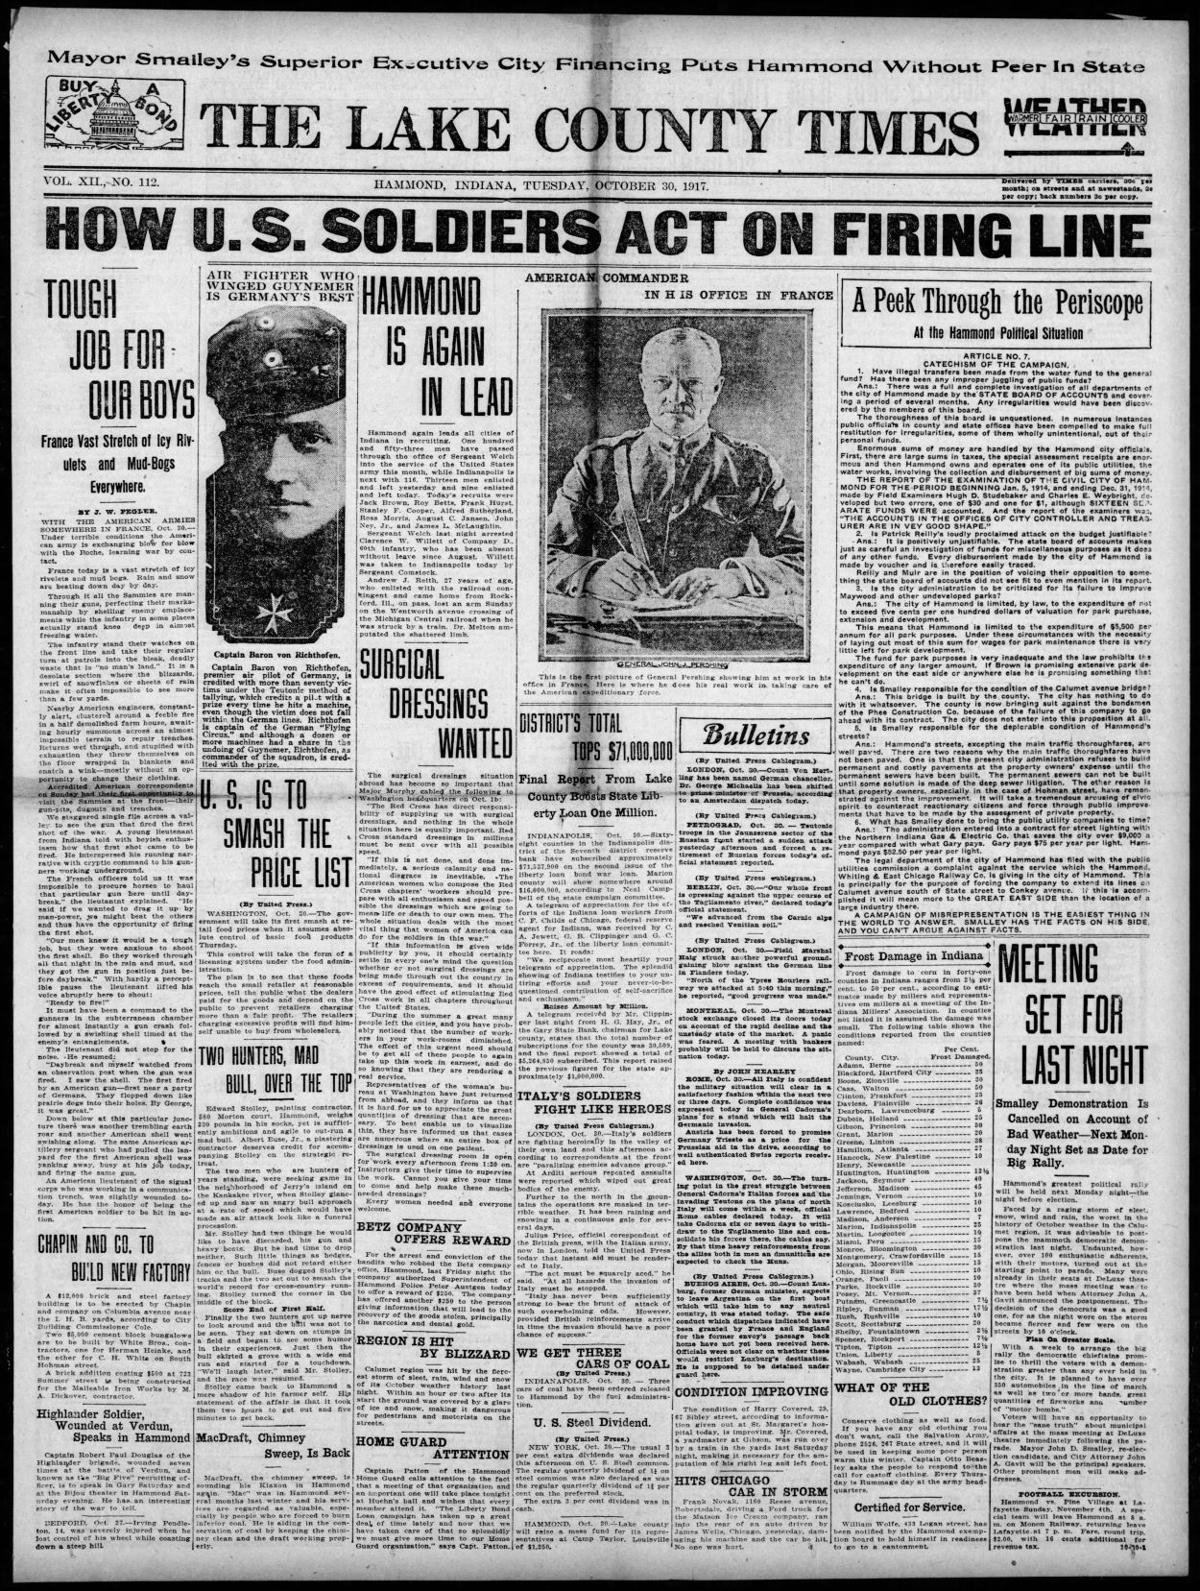 Oct. 30, 1917: How U.S. Soldiers Act On Firing Line